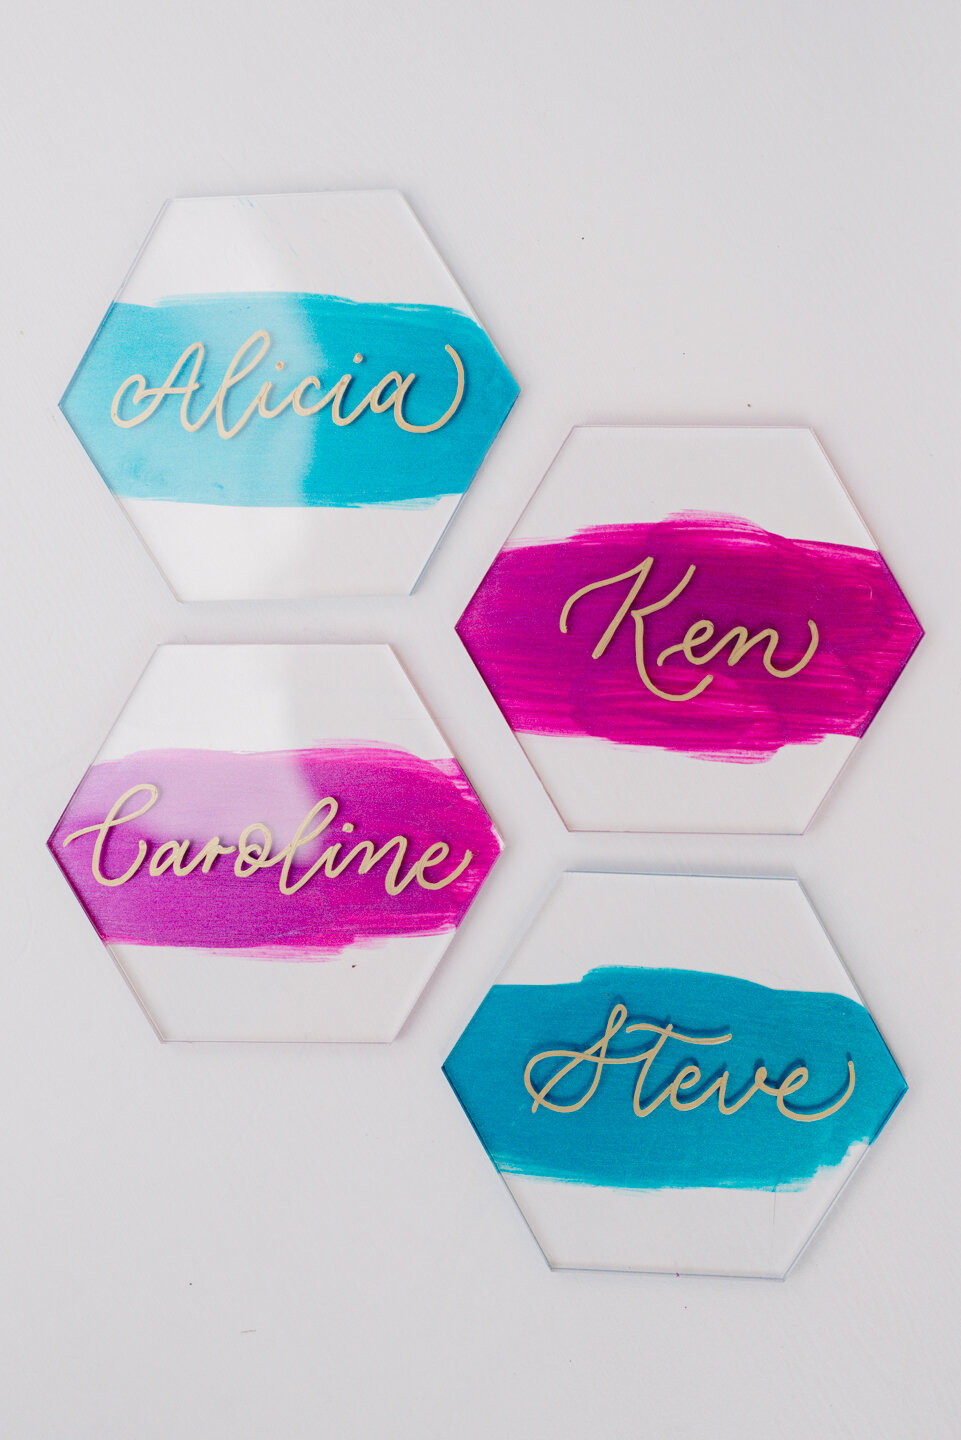 Hexagon acrylic place cards with painted backs, gold ink, and modern calligraphy.